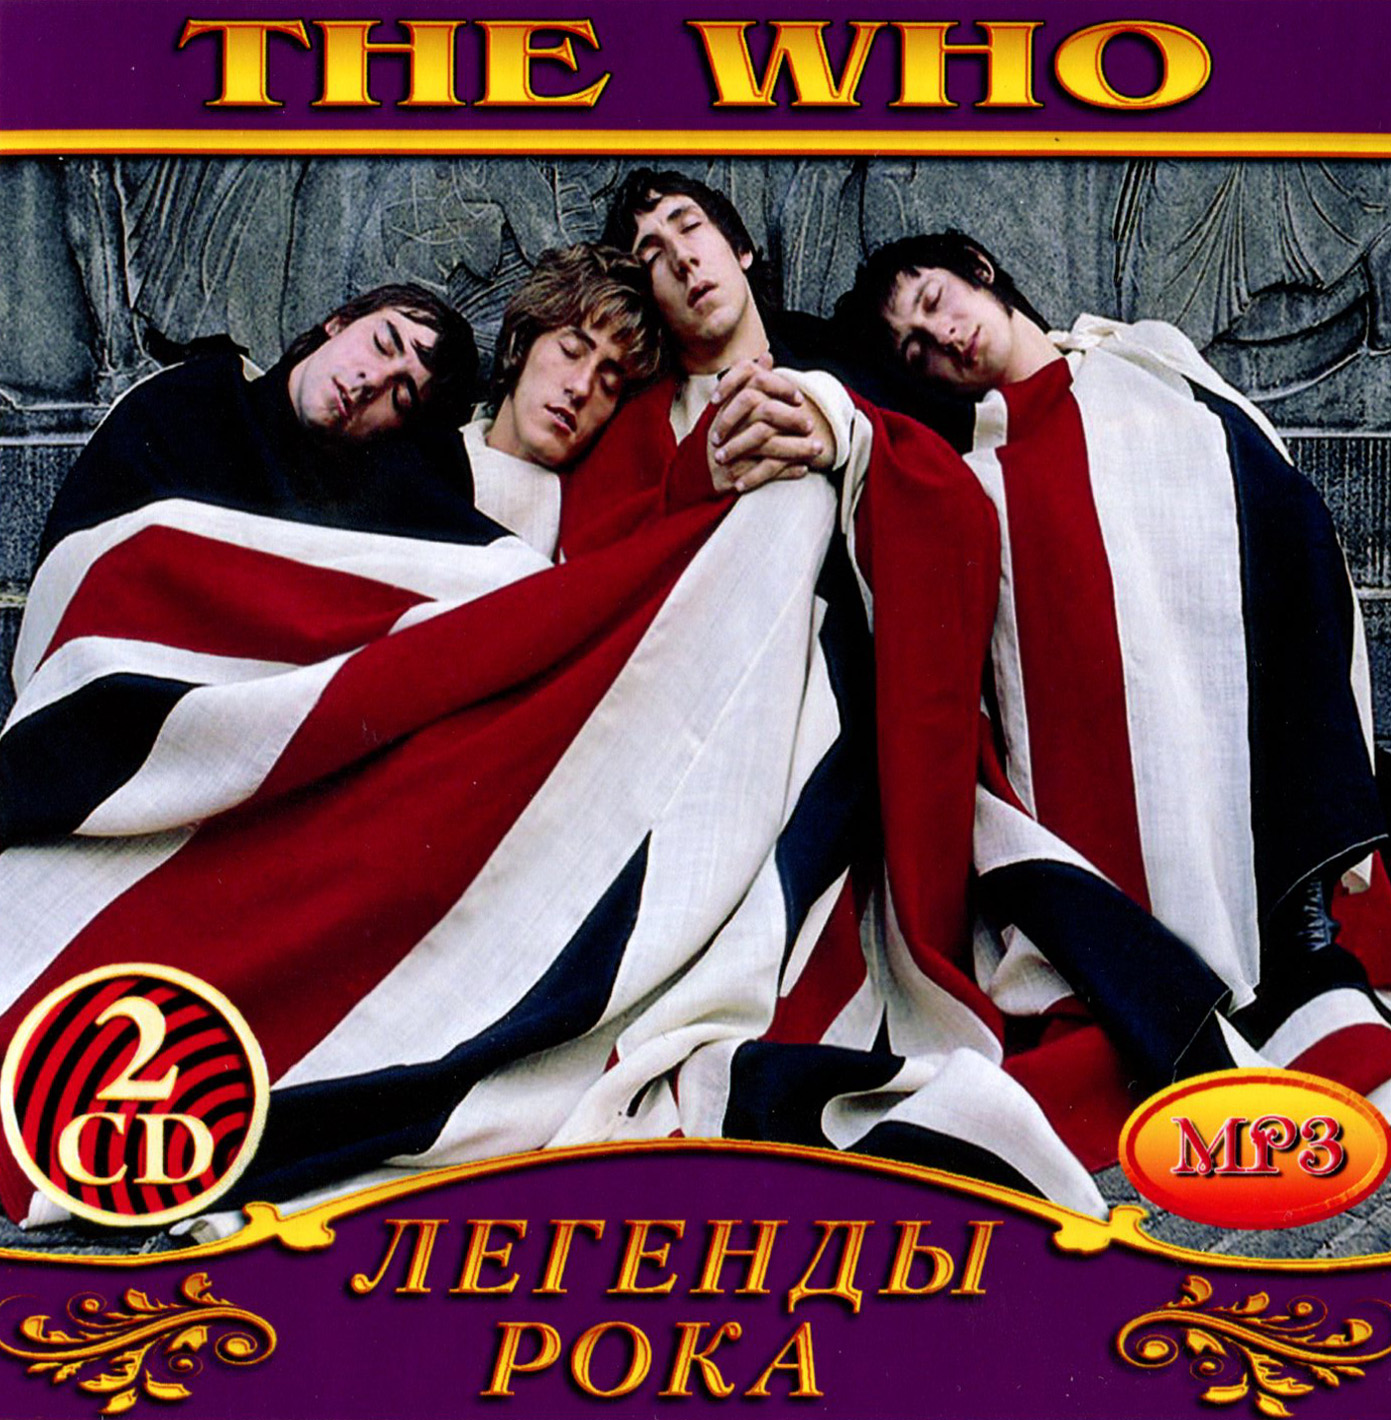 The Who 2cd [mp3]